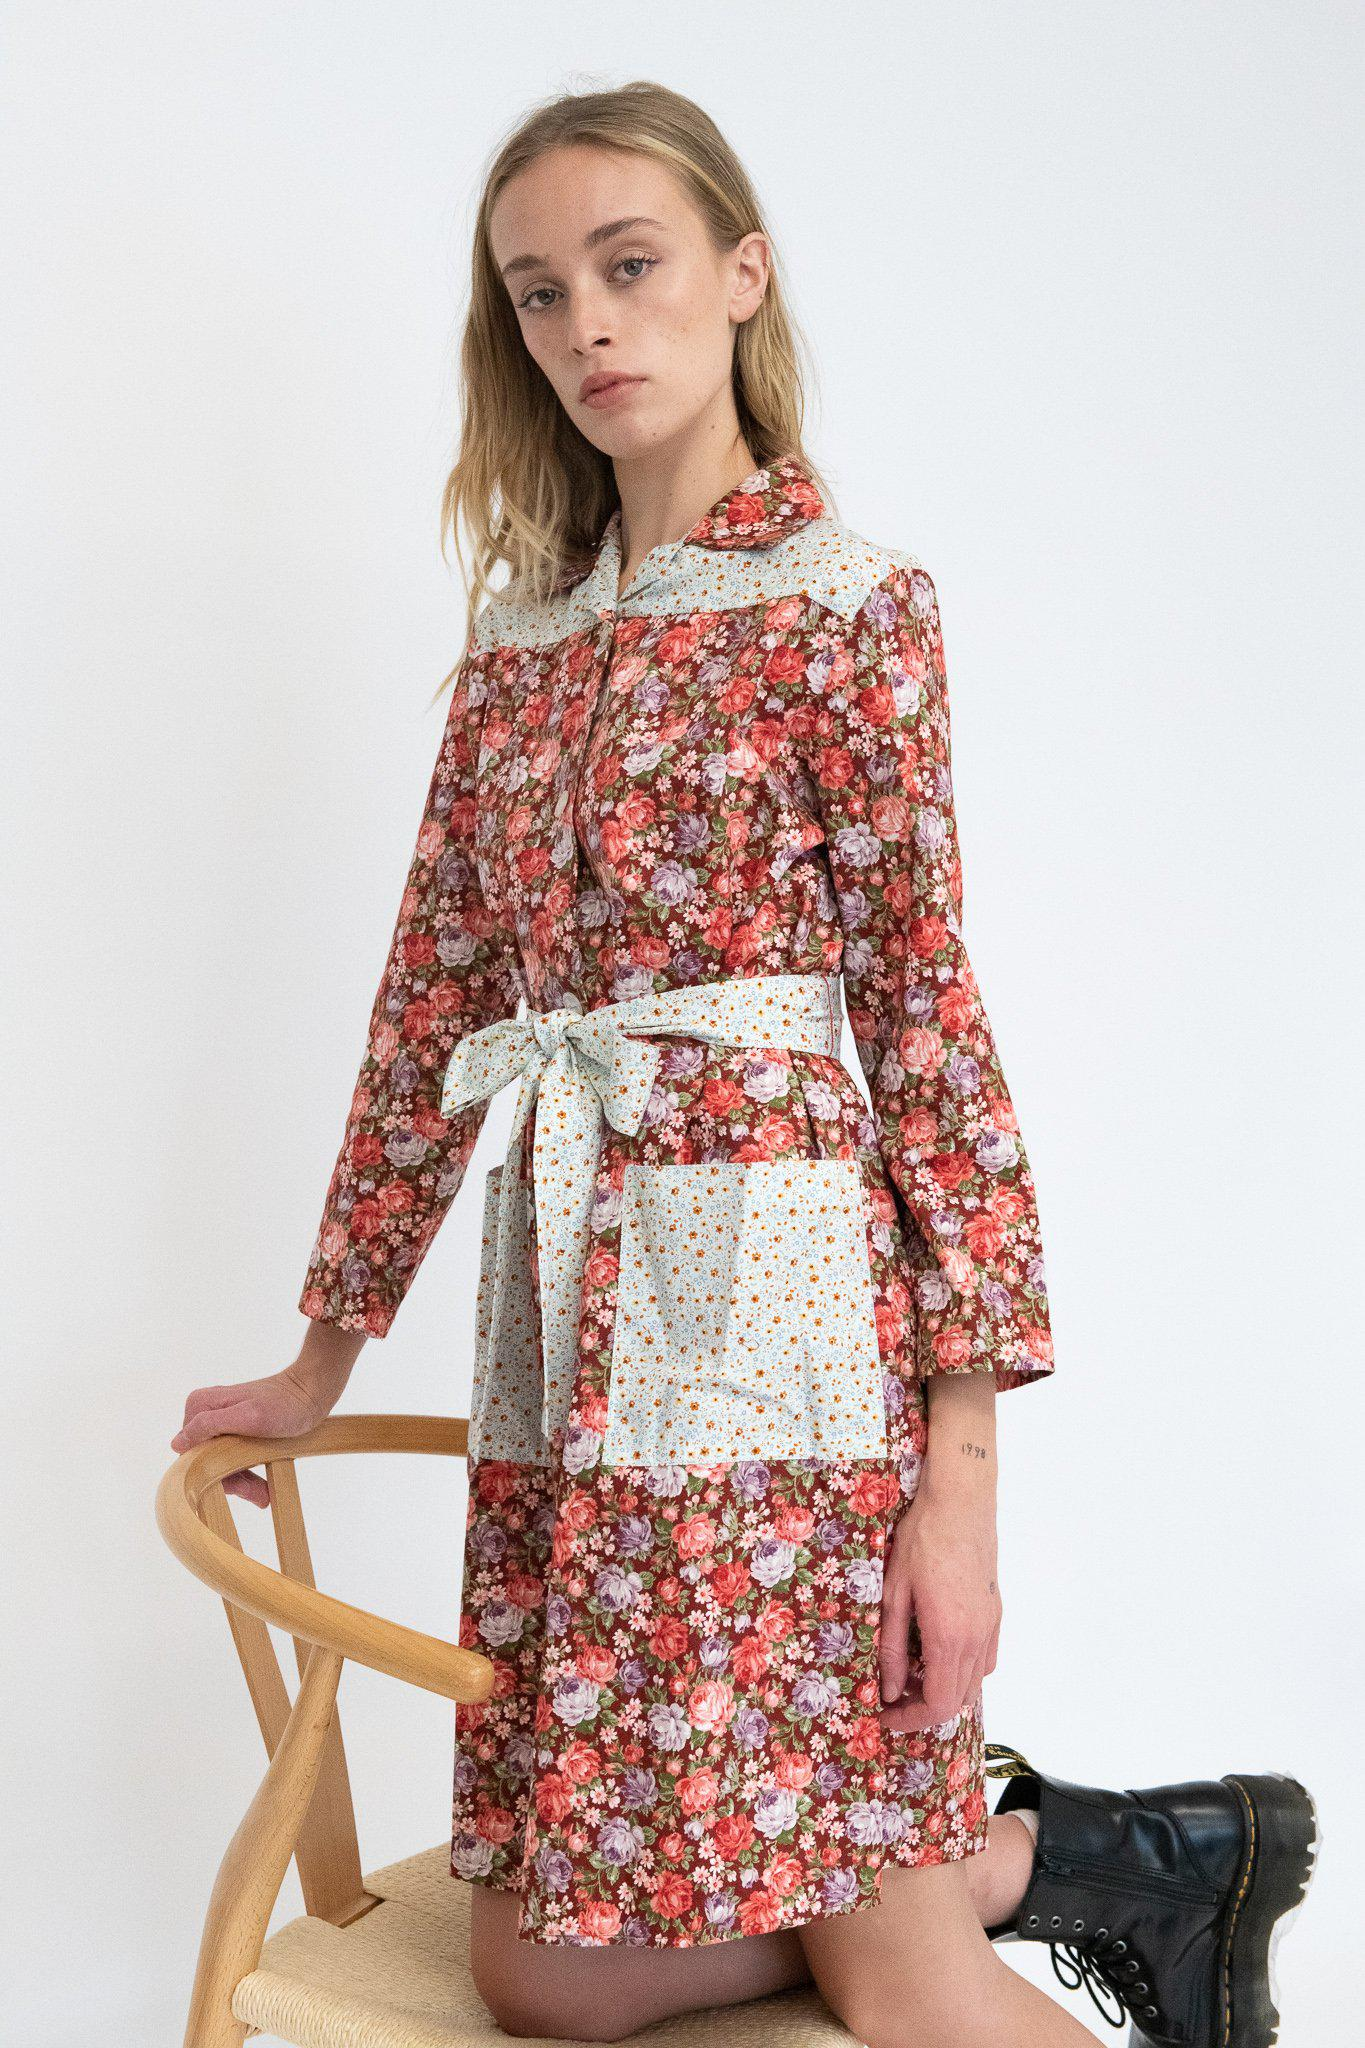 Long Sleeve Housedress in Cabernet Rose and Blue Floral 1